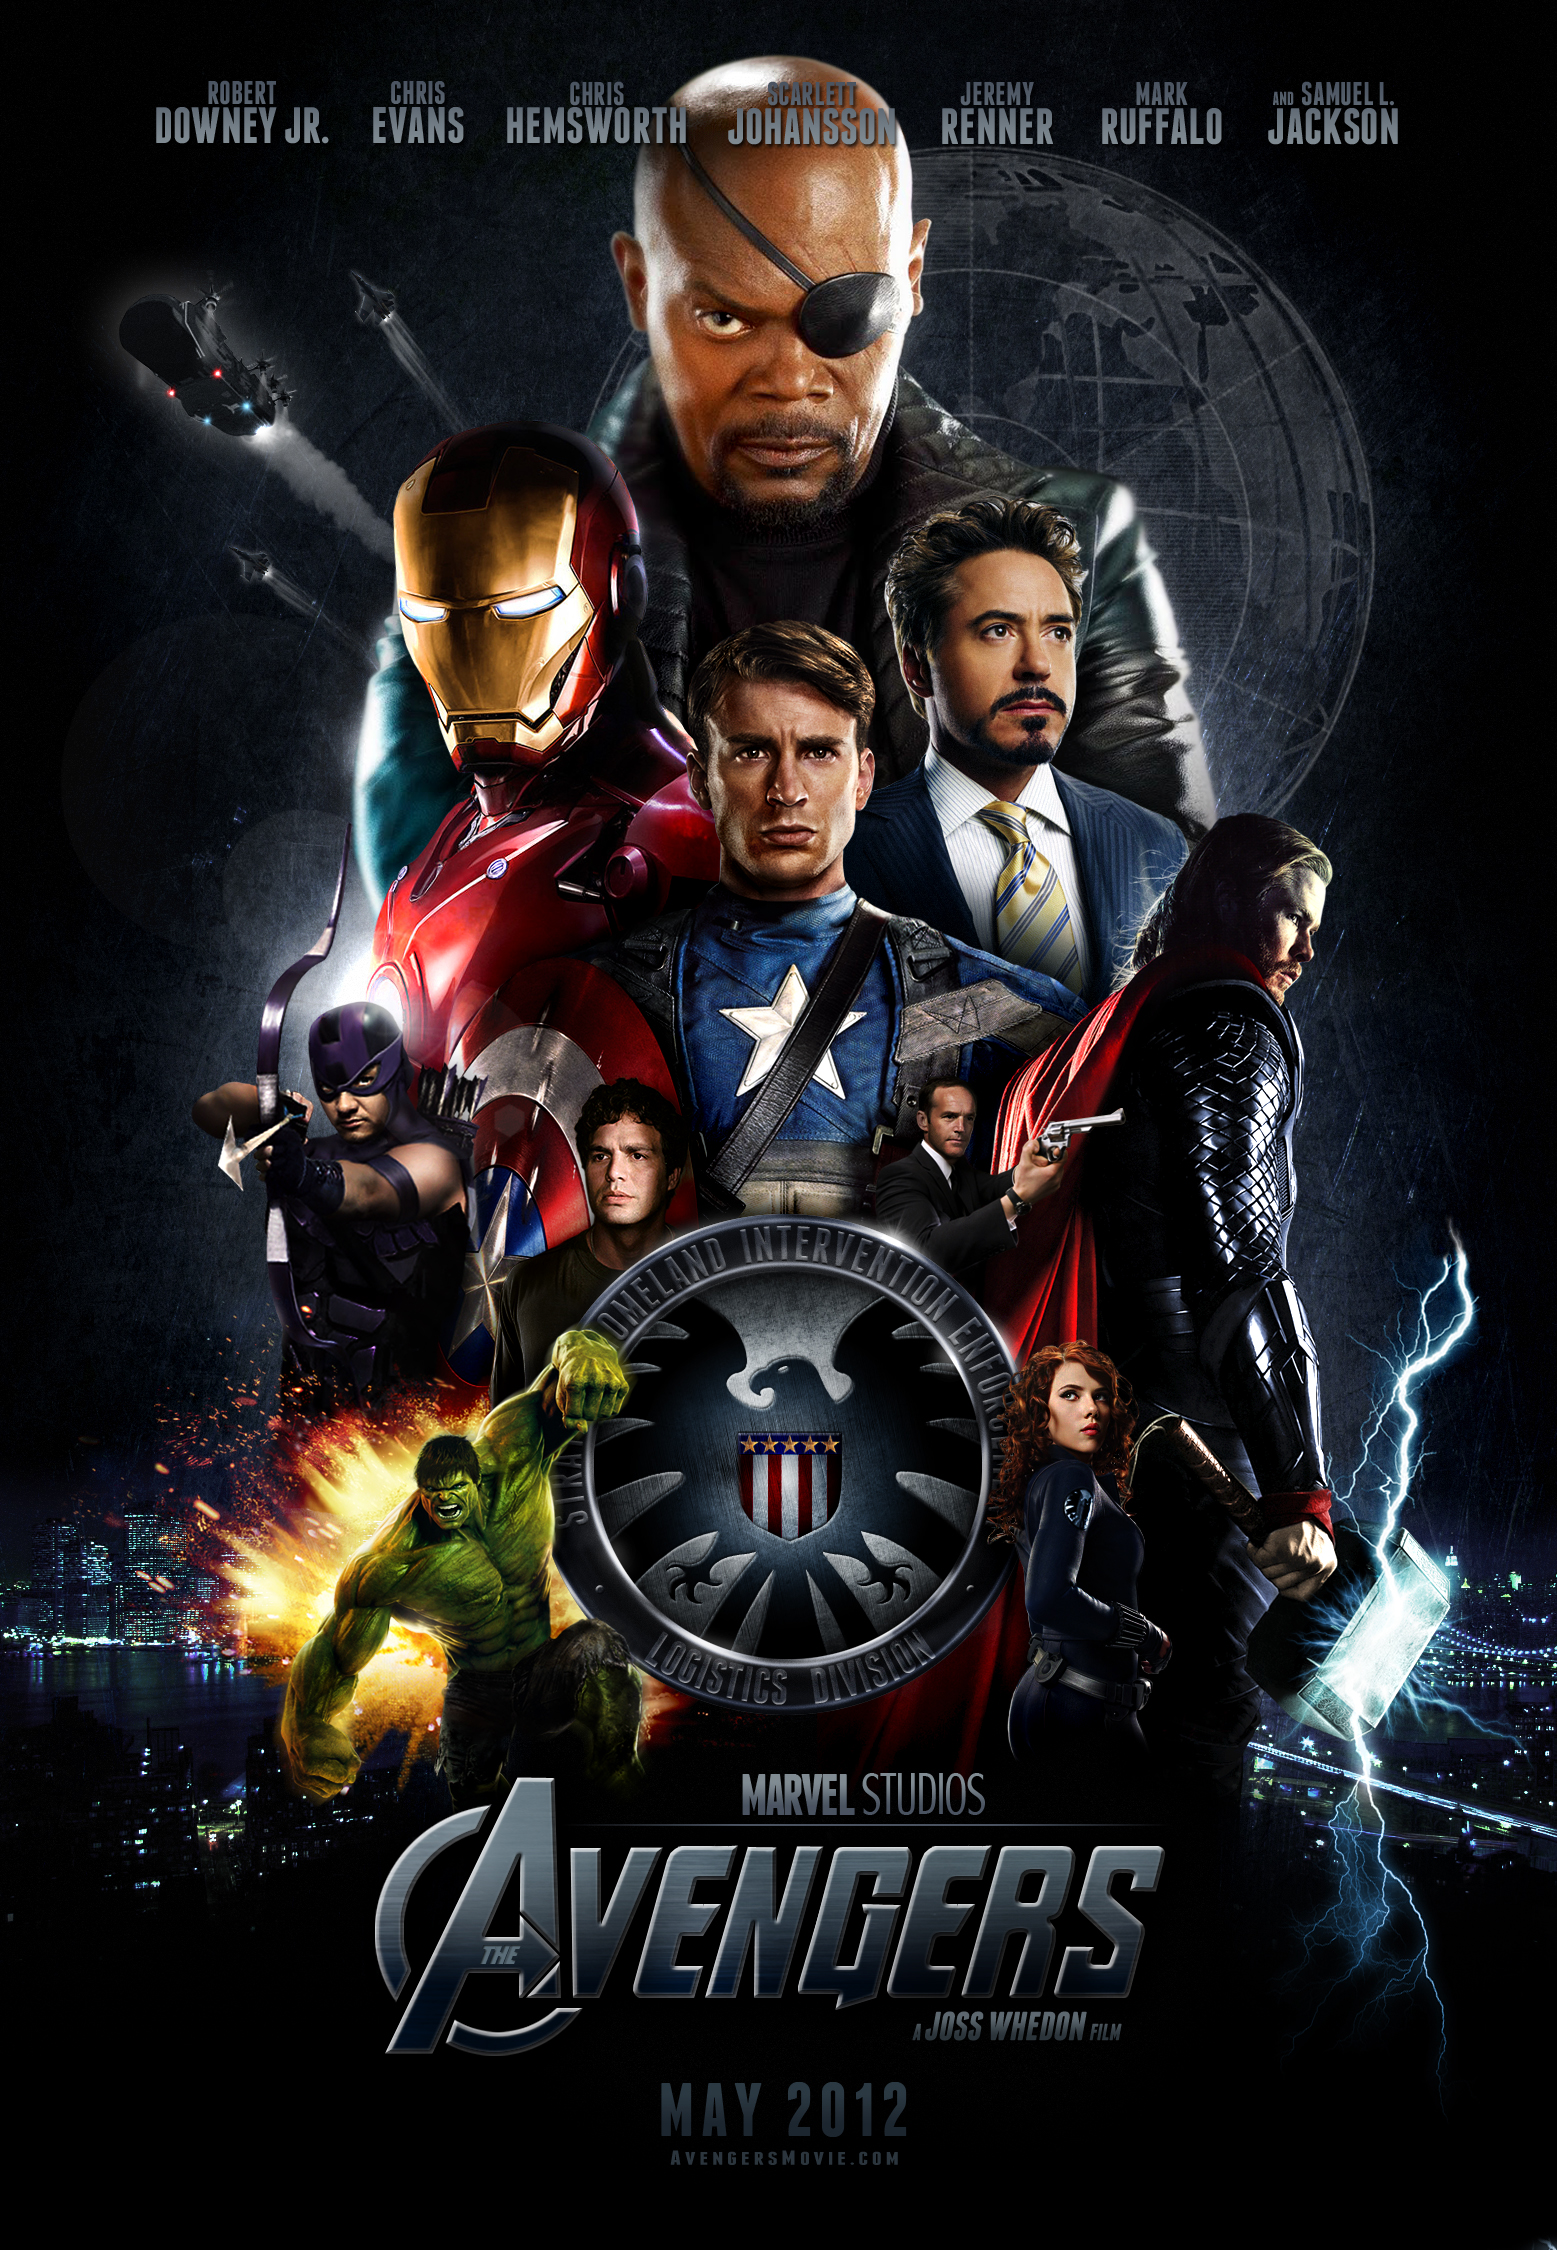 Movie Poster The Avengers